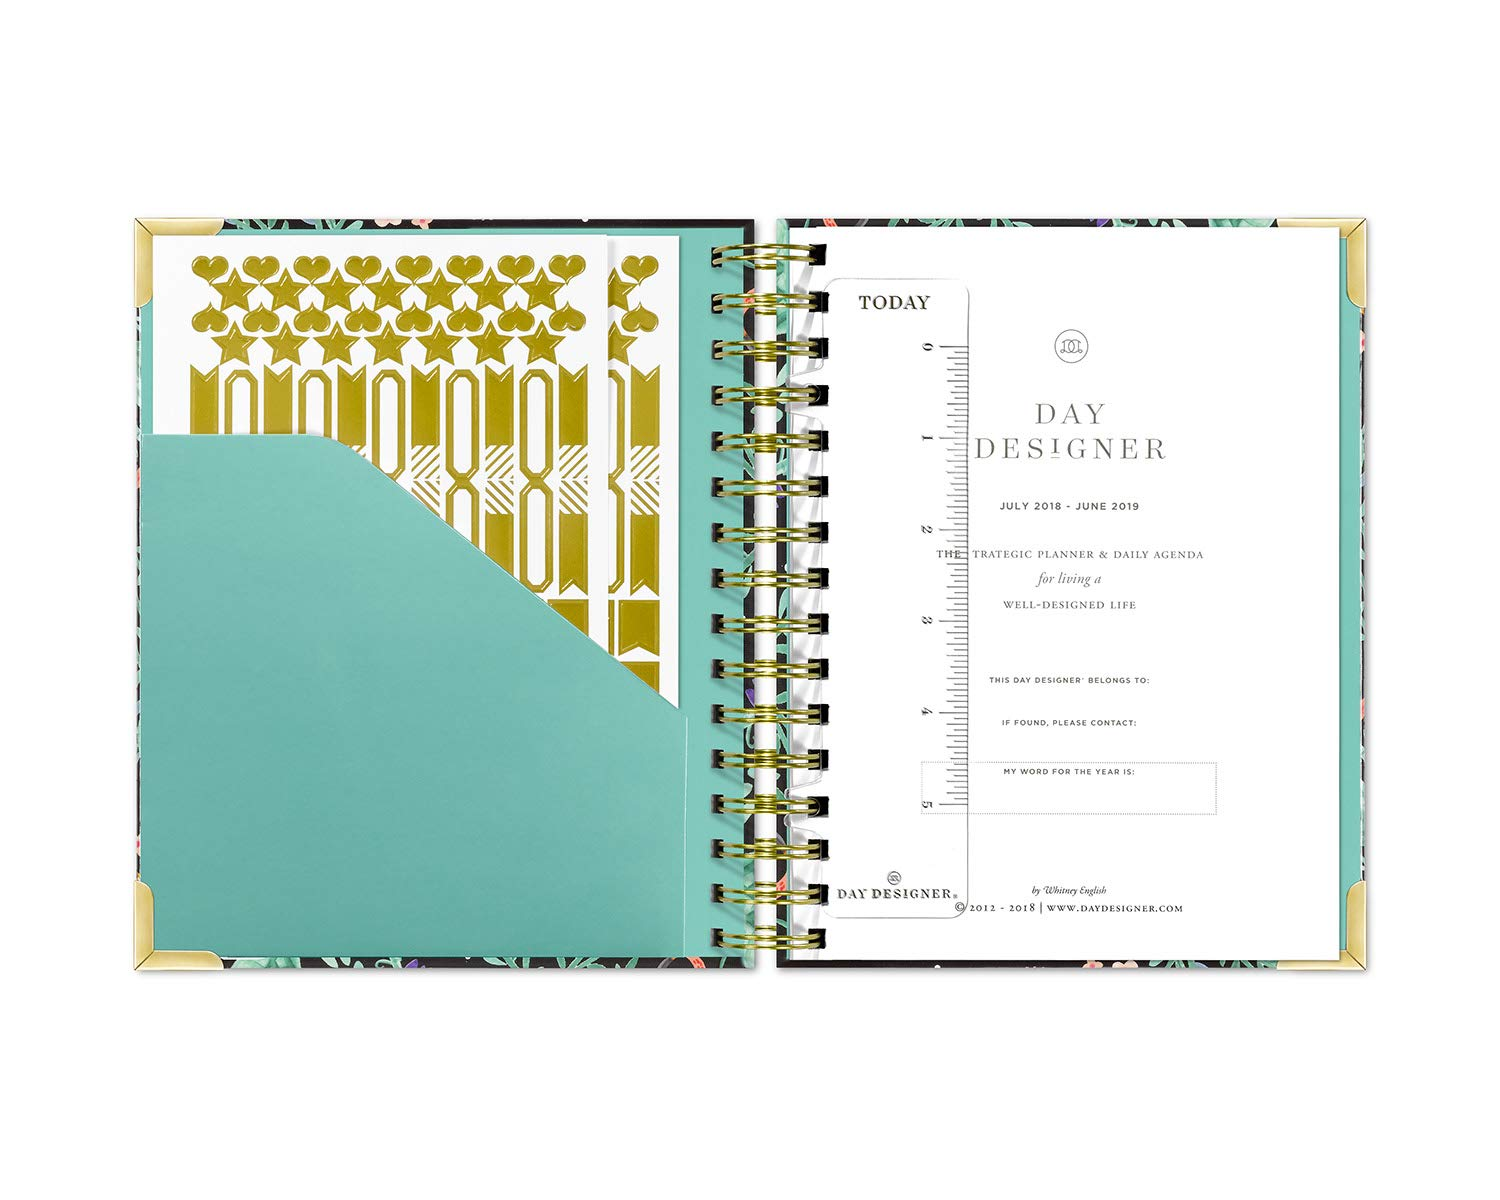 Day Designer 2019 Mini Daily Life Planner and Agenda, Hardcover, Twin-Wire Binding, 6.625